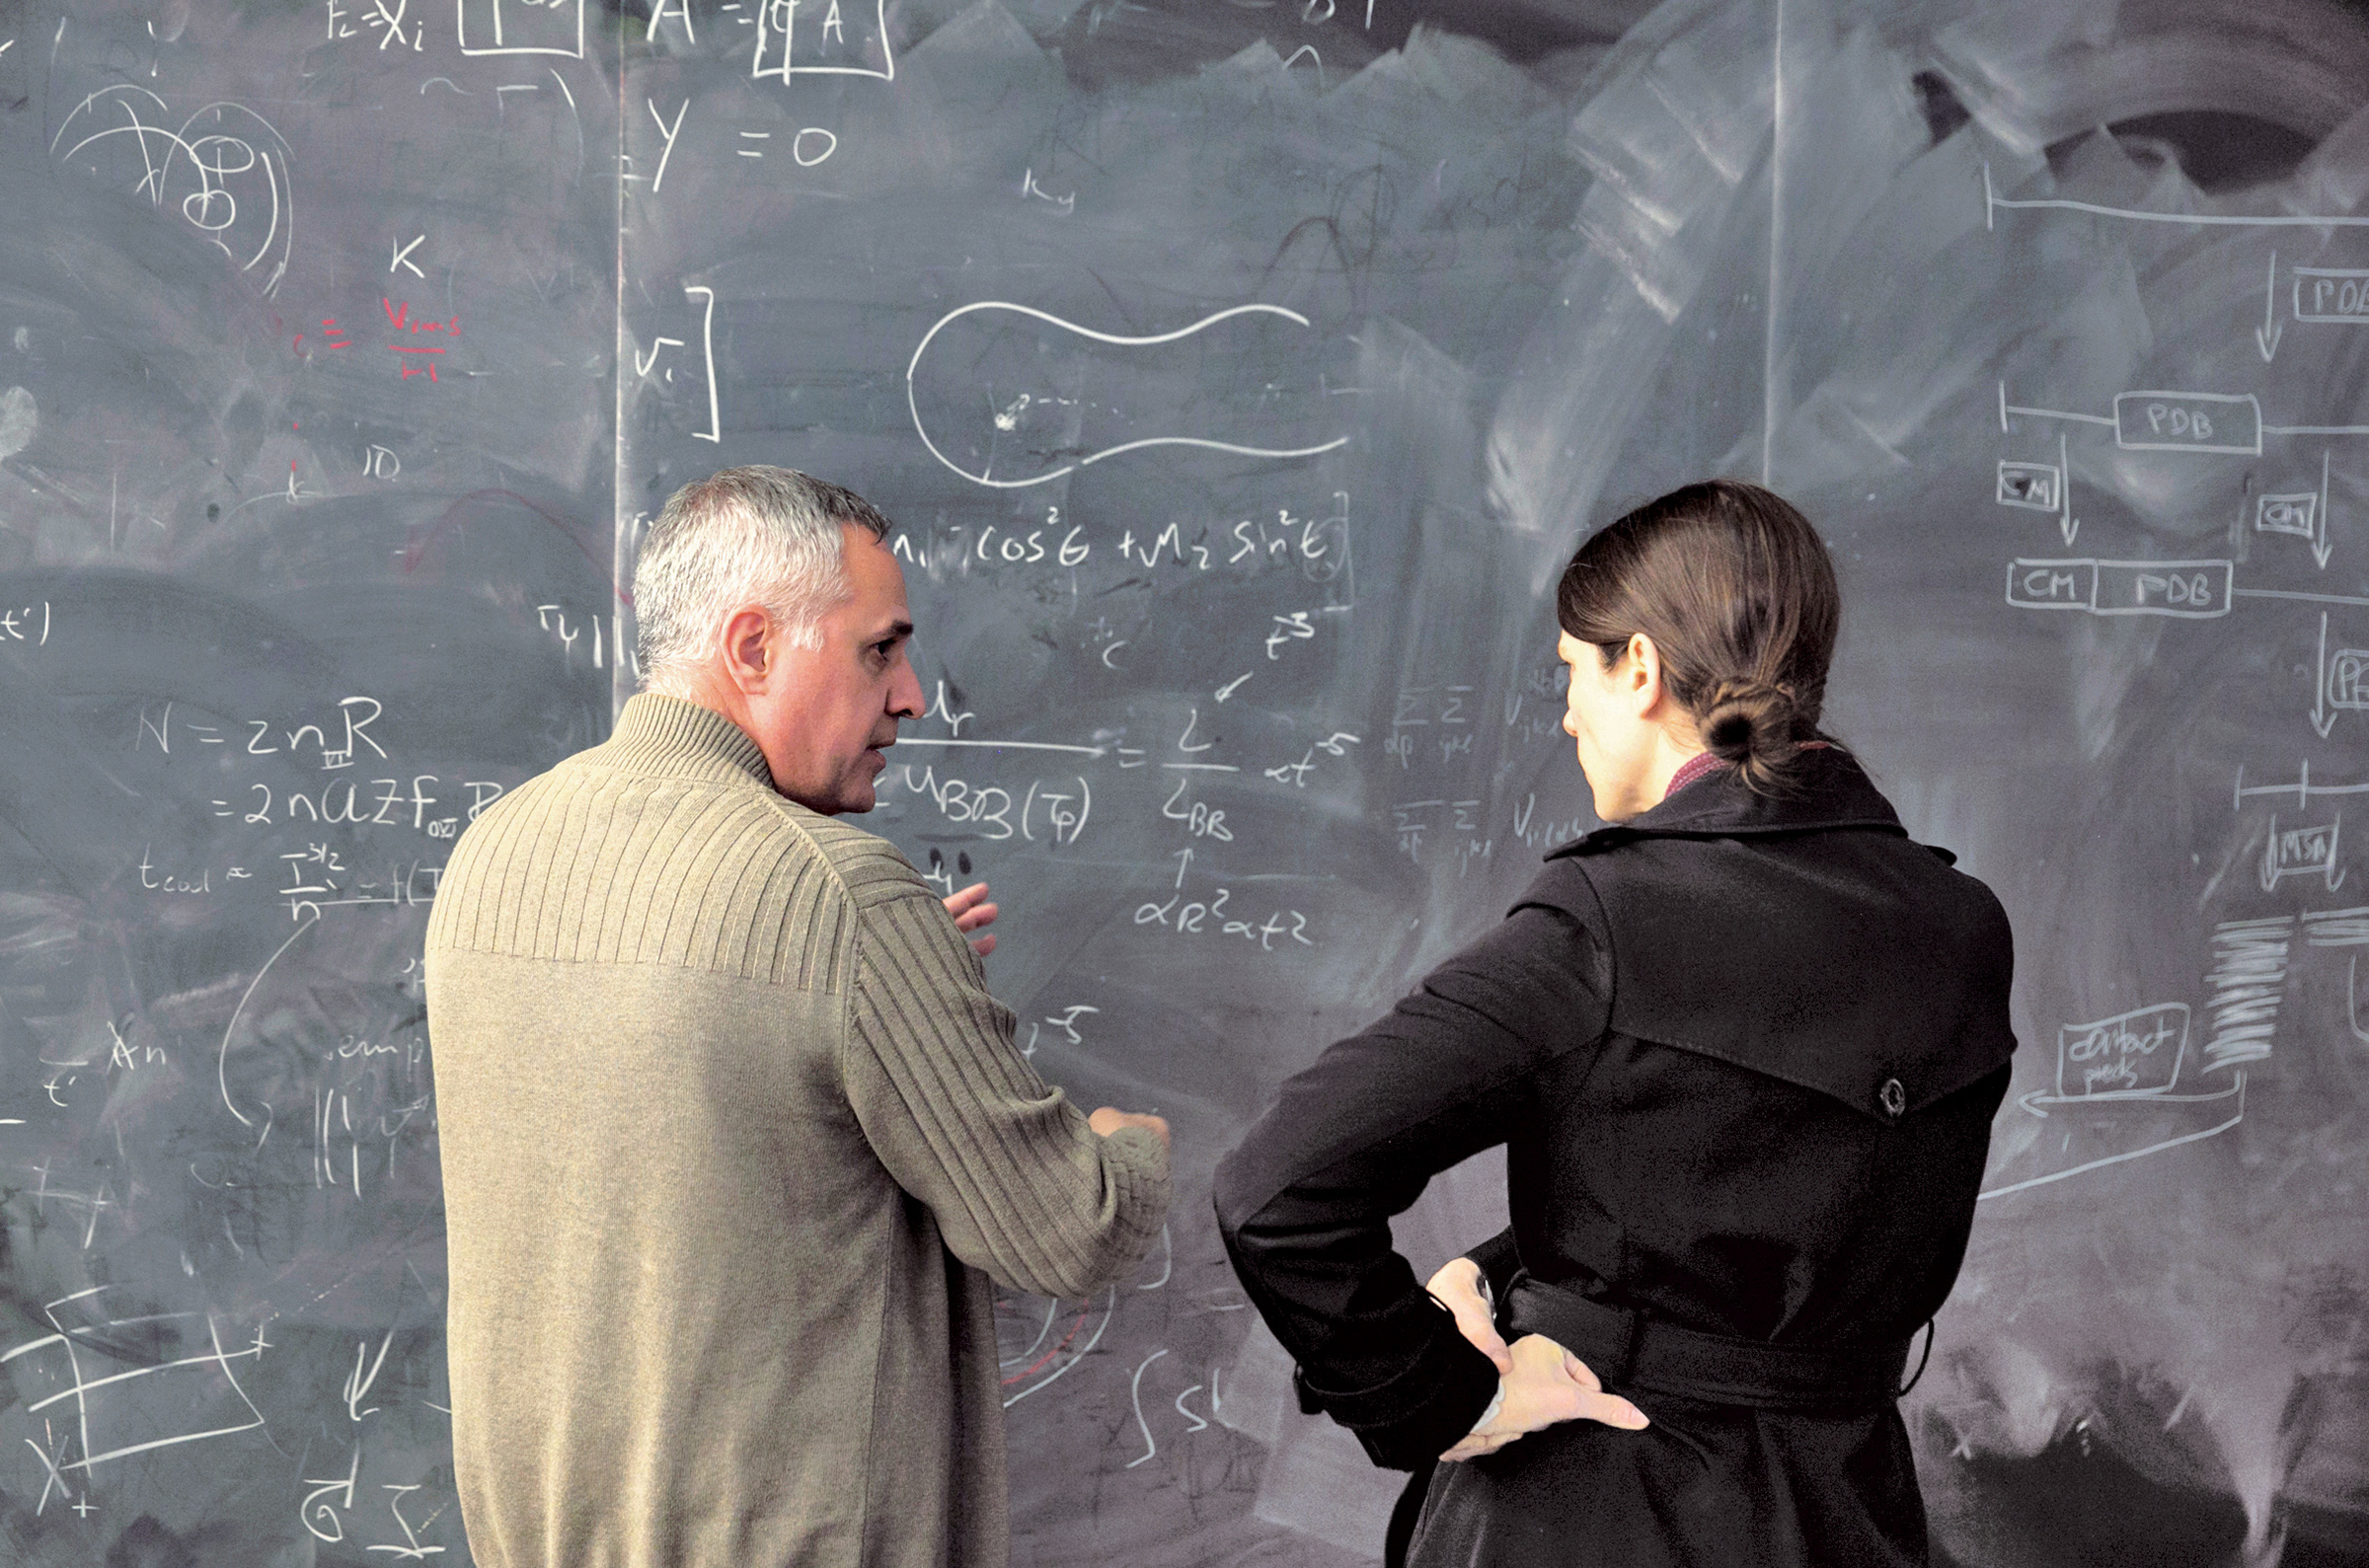 The CCA offers a very interactive, exciting environment for discussing scientific ideas and computational methods.